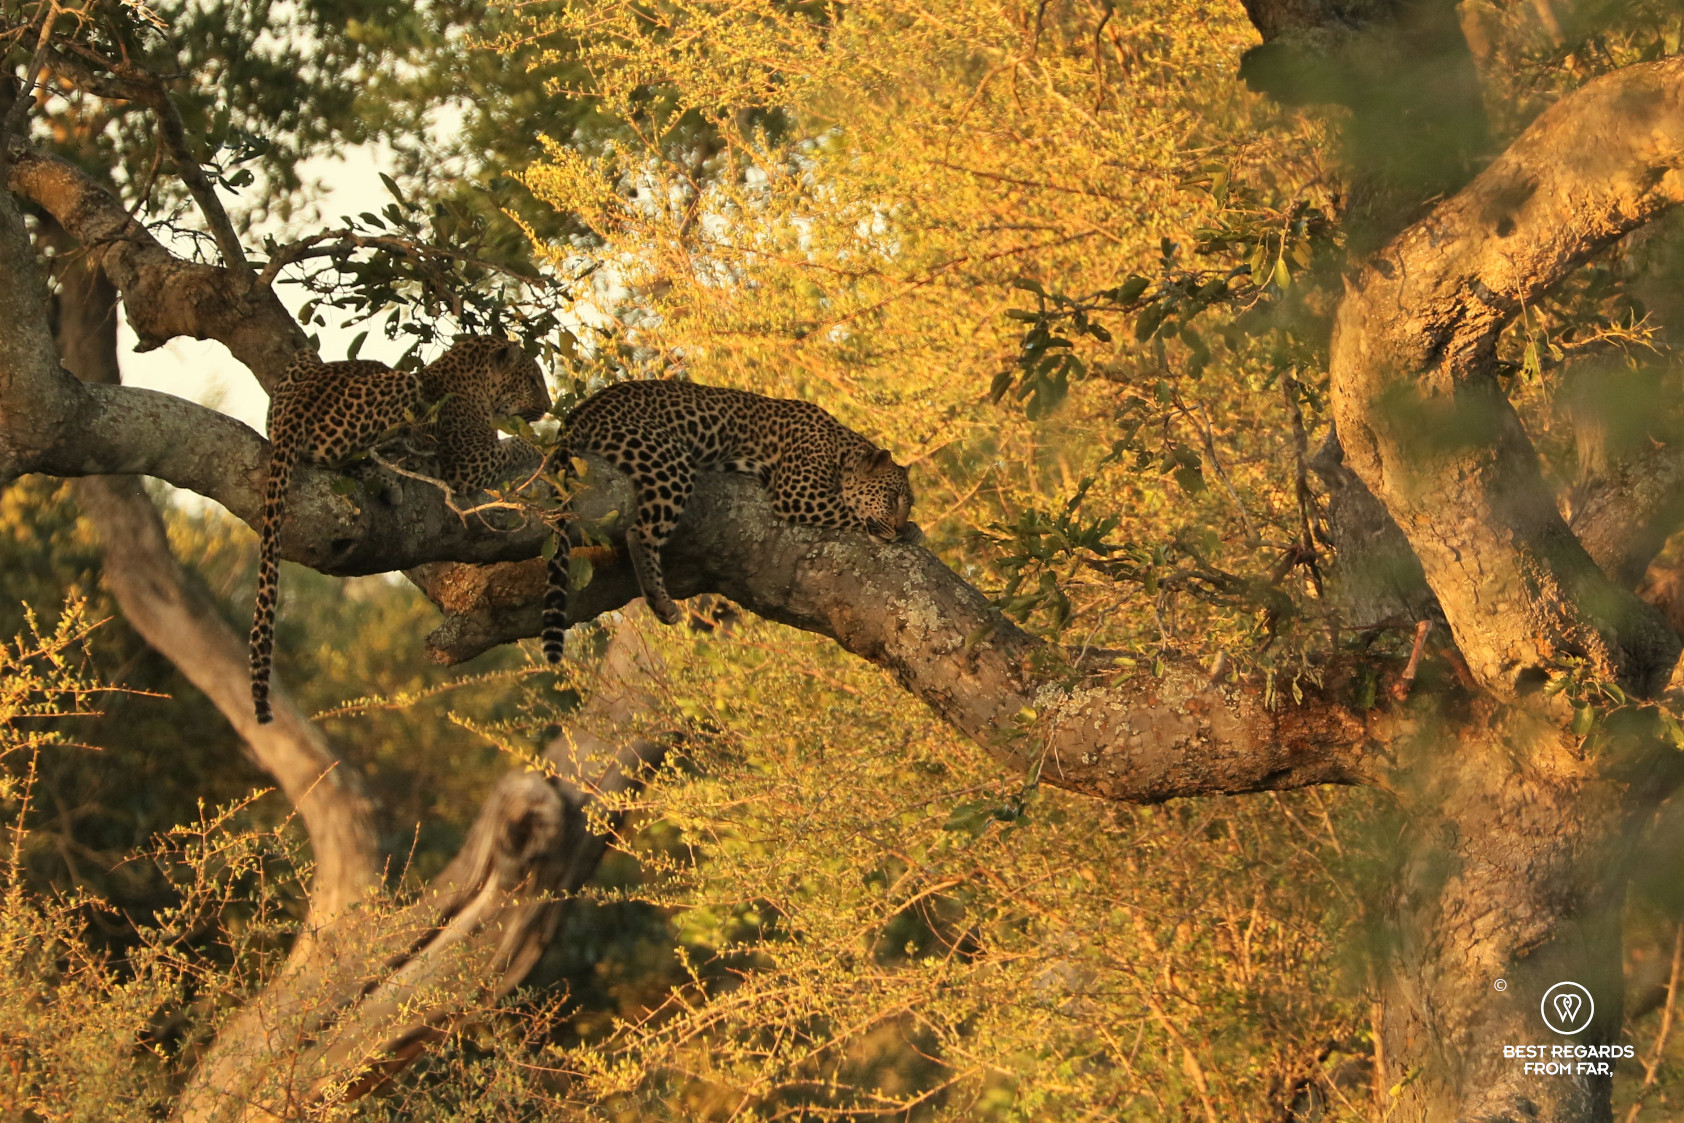 Two leopards sleeping on a large tree branch at sunset with d dead impala haning